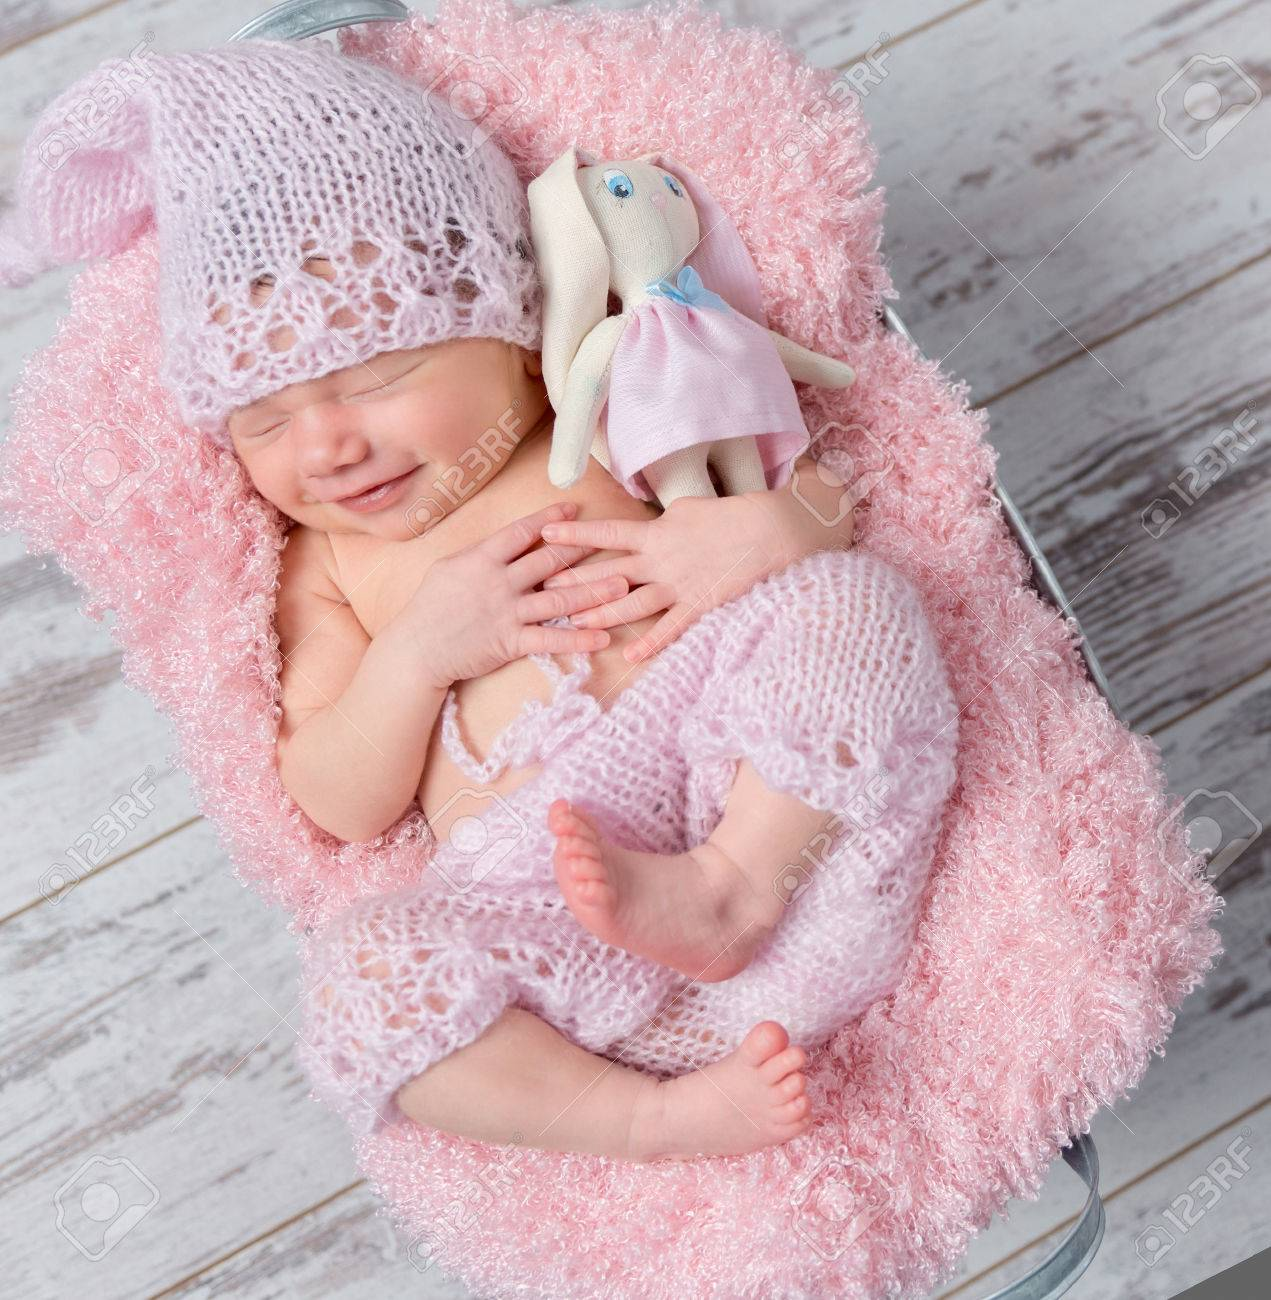 Cute Smiling Newborn Baby Girl In A Pink Hat Sleeping With A Stock Photo Picture And Royalty Free Image Image 58656275